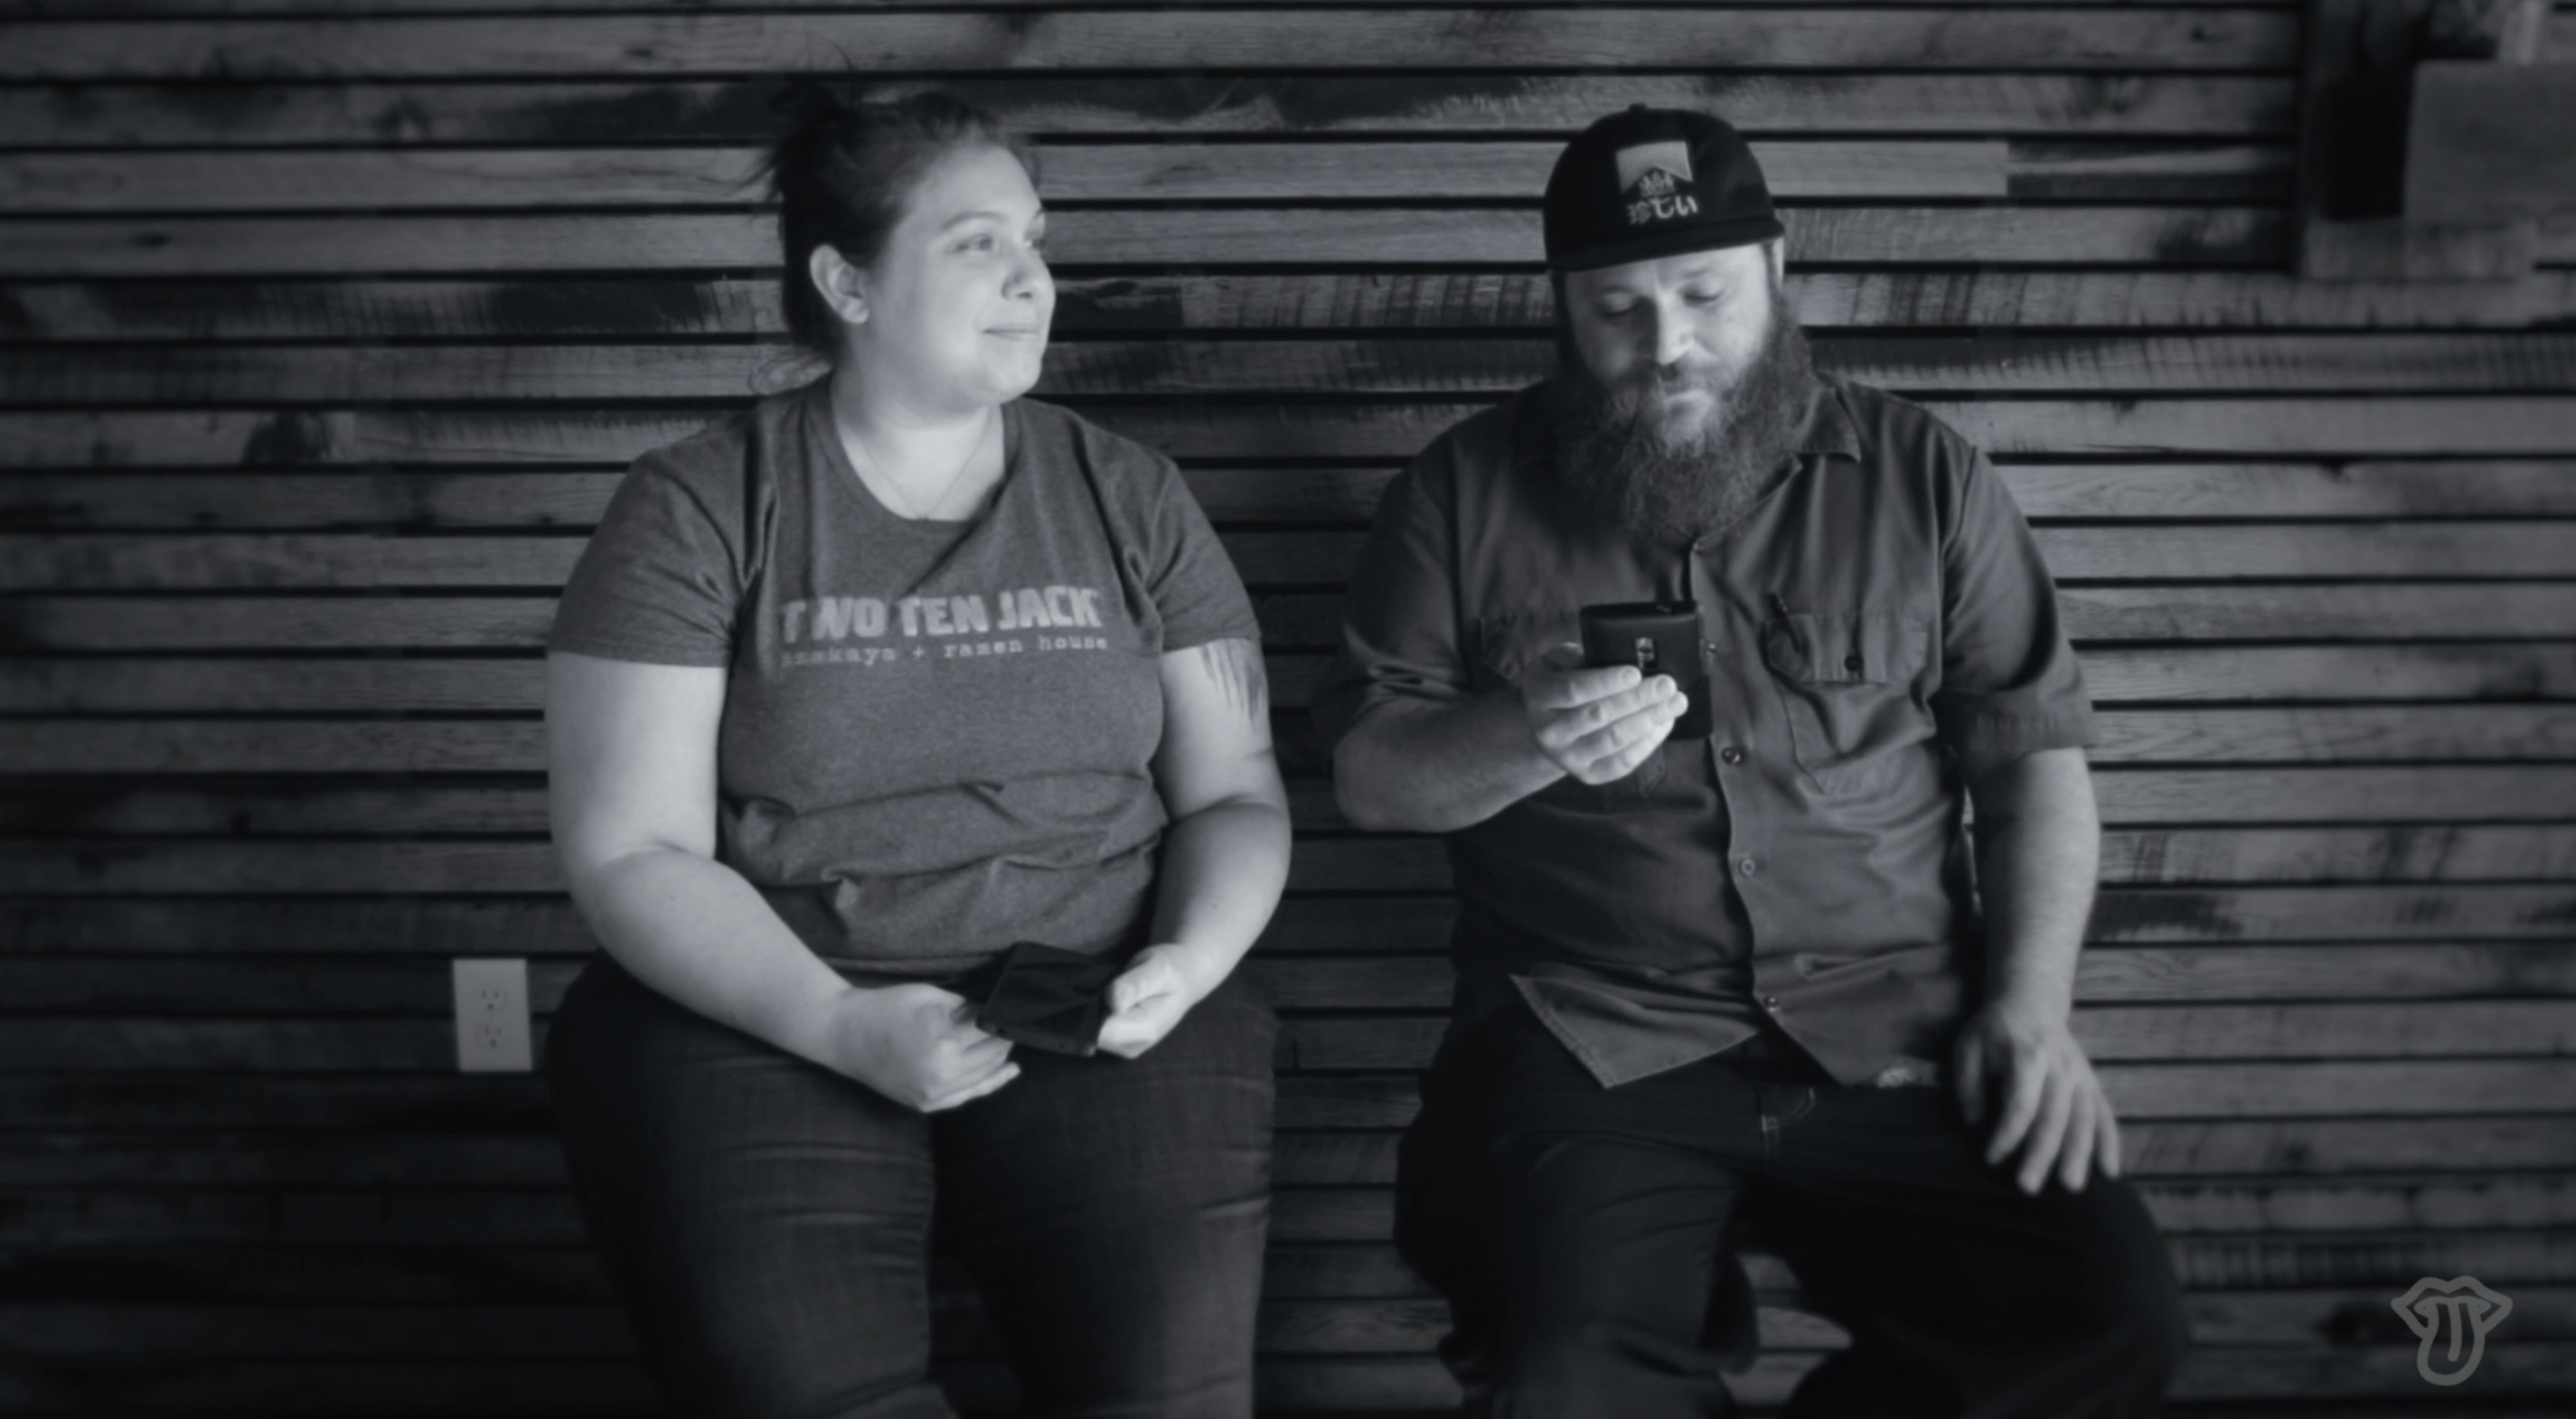 Watch: Two Nashville Chefs Read Bad Reviews